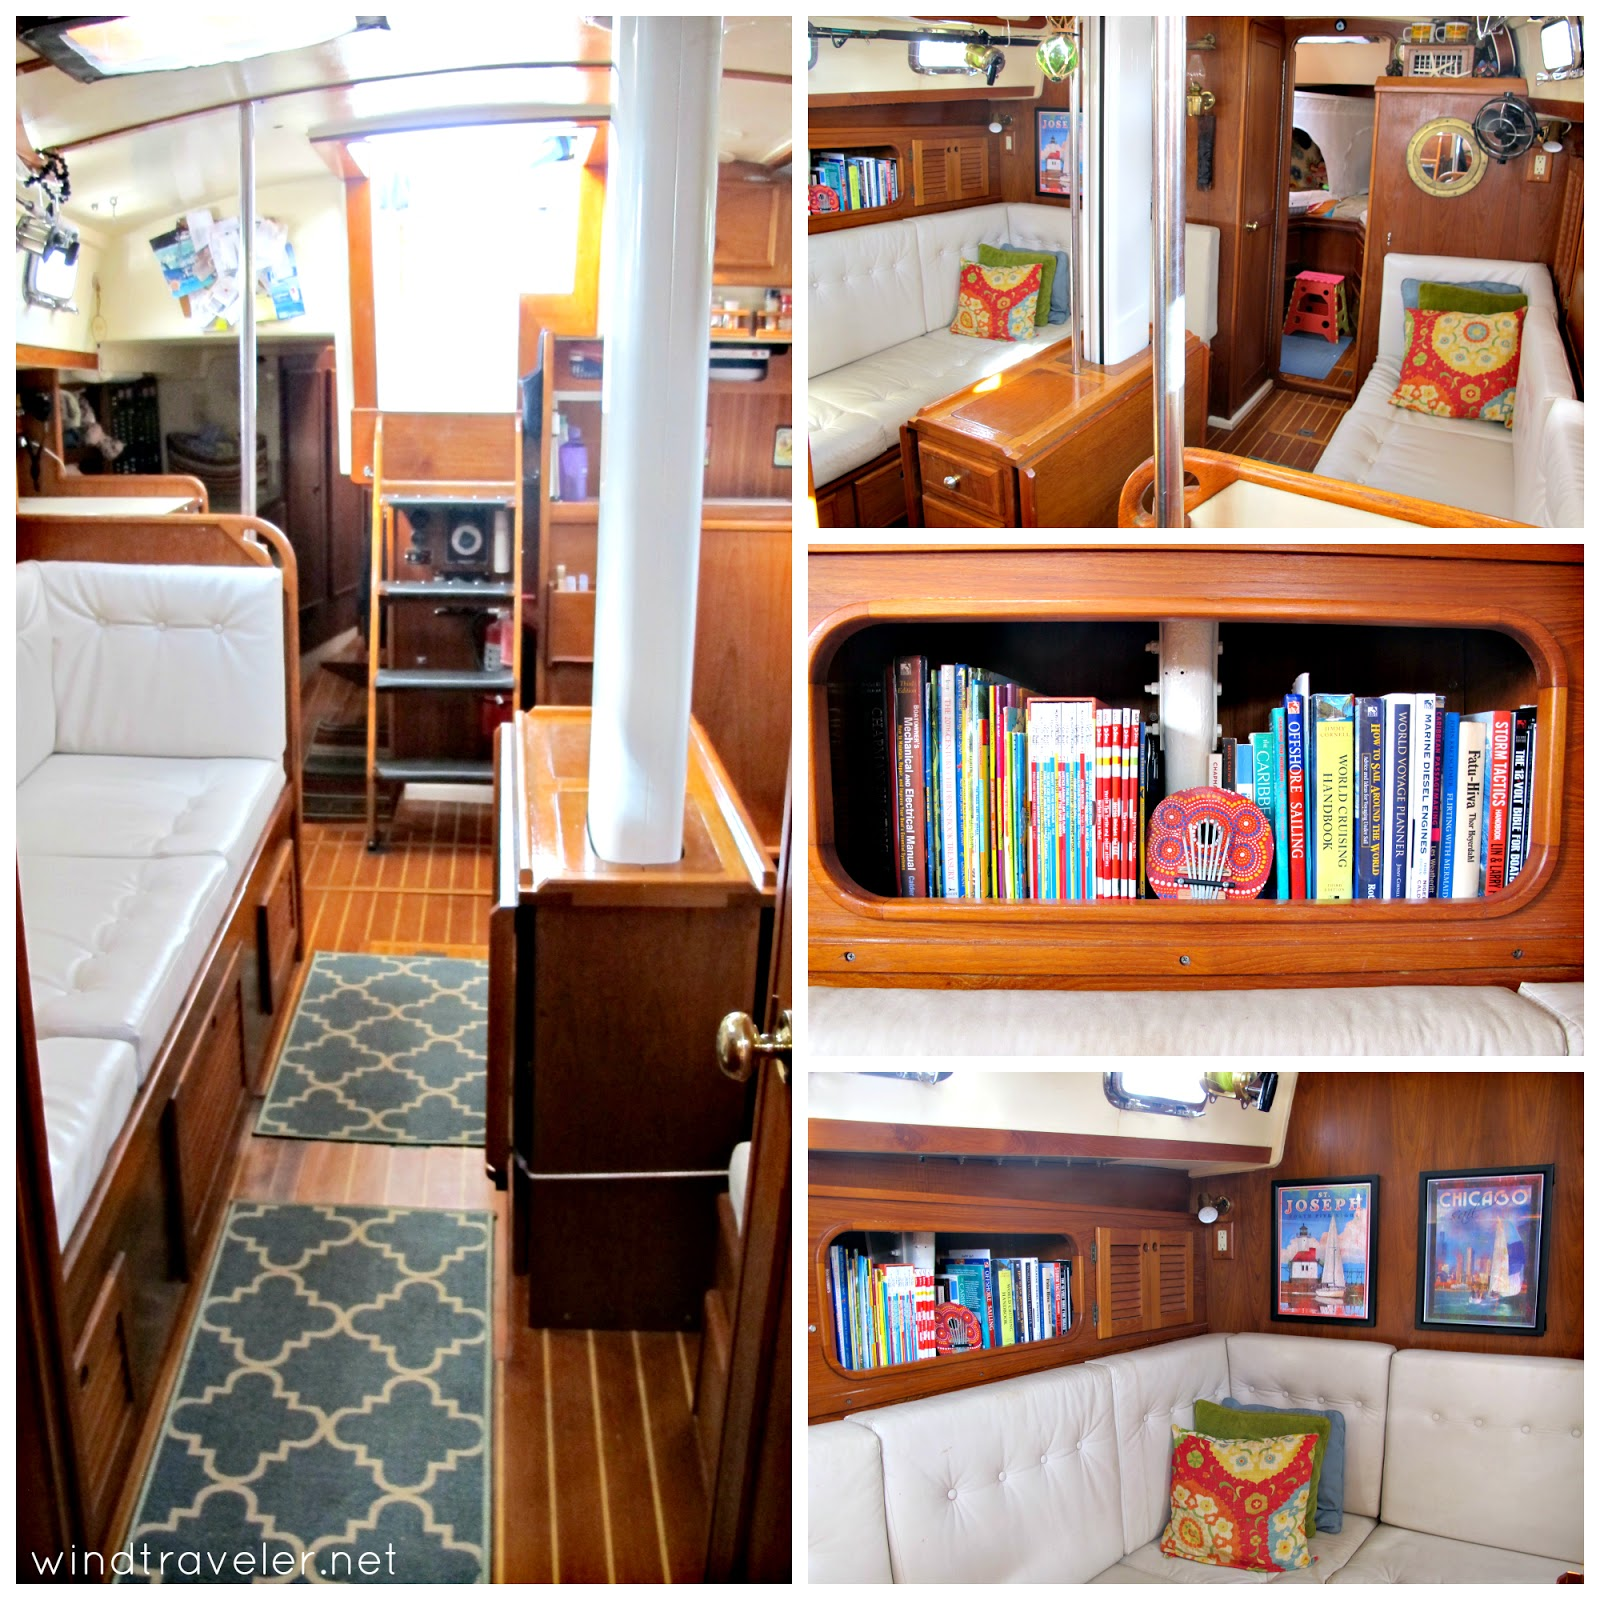 Windtraveler: Our Boat Interior: A Photo Tour